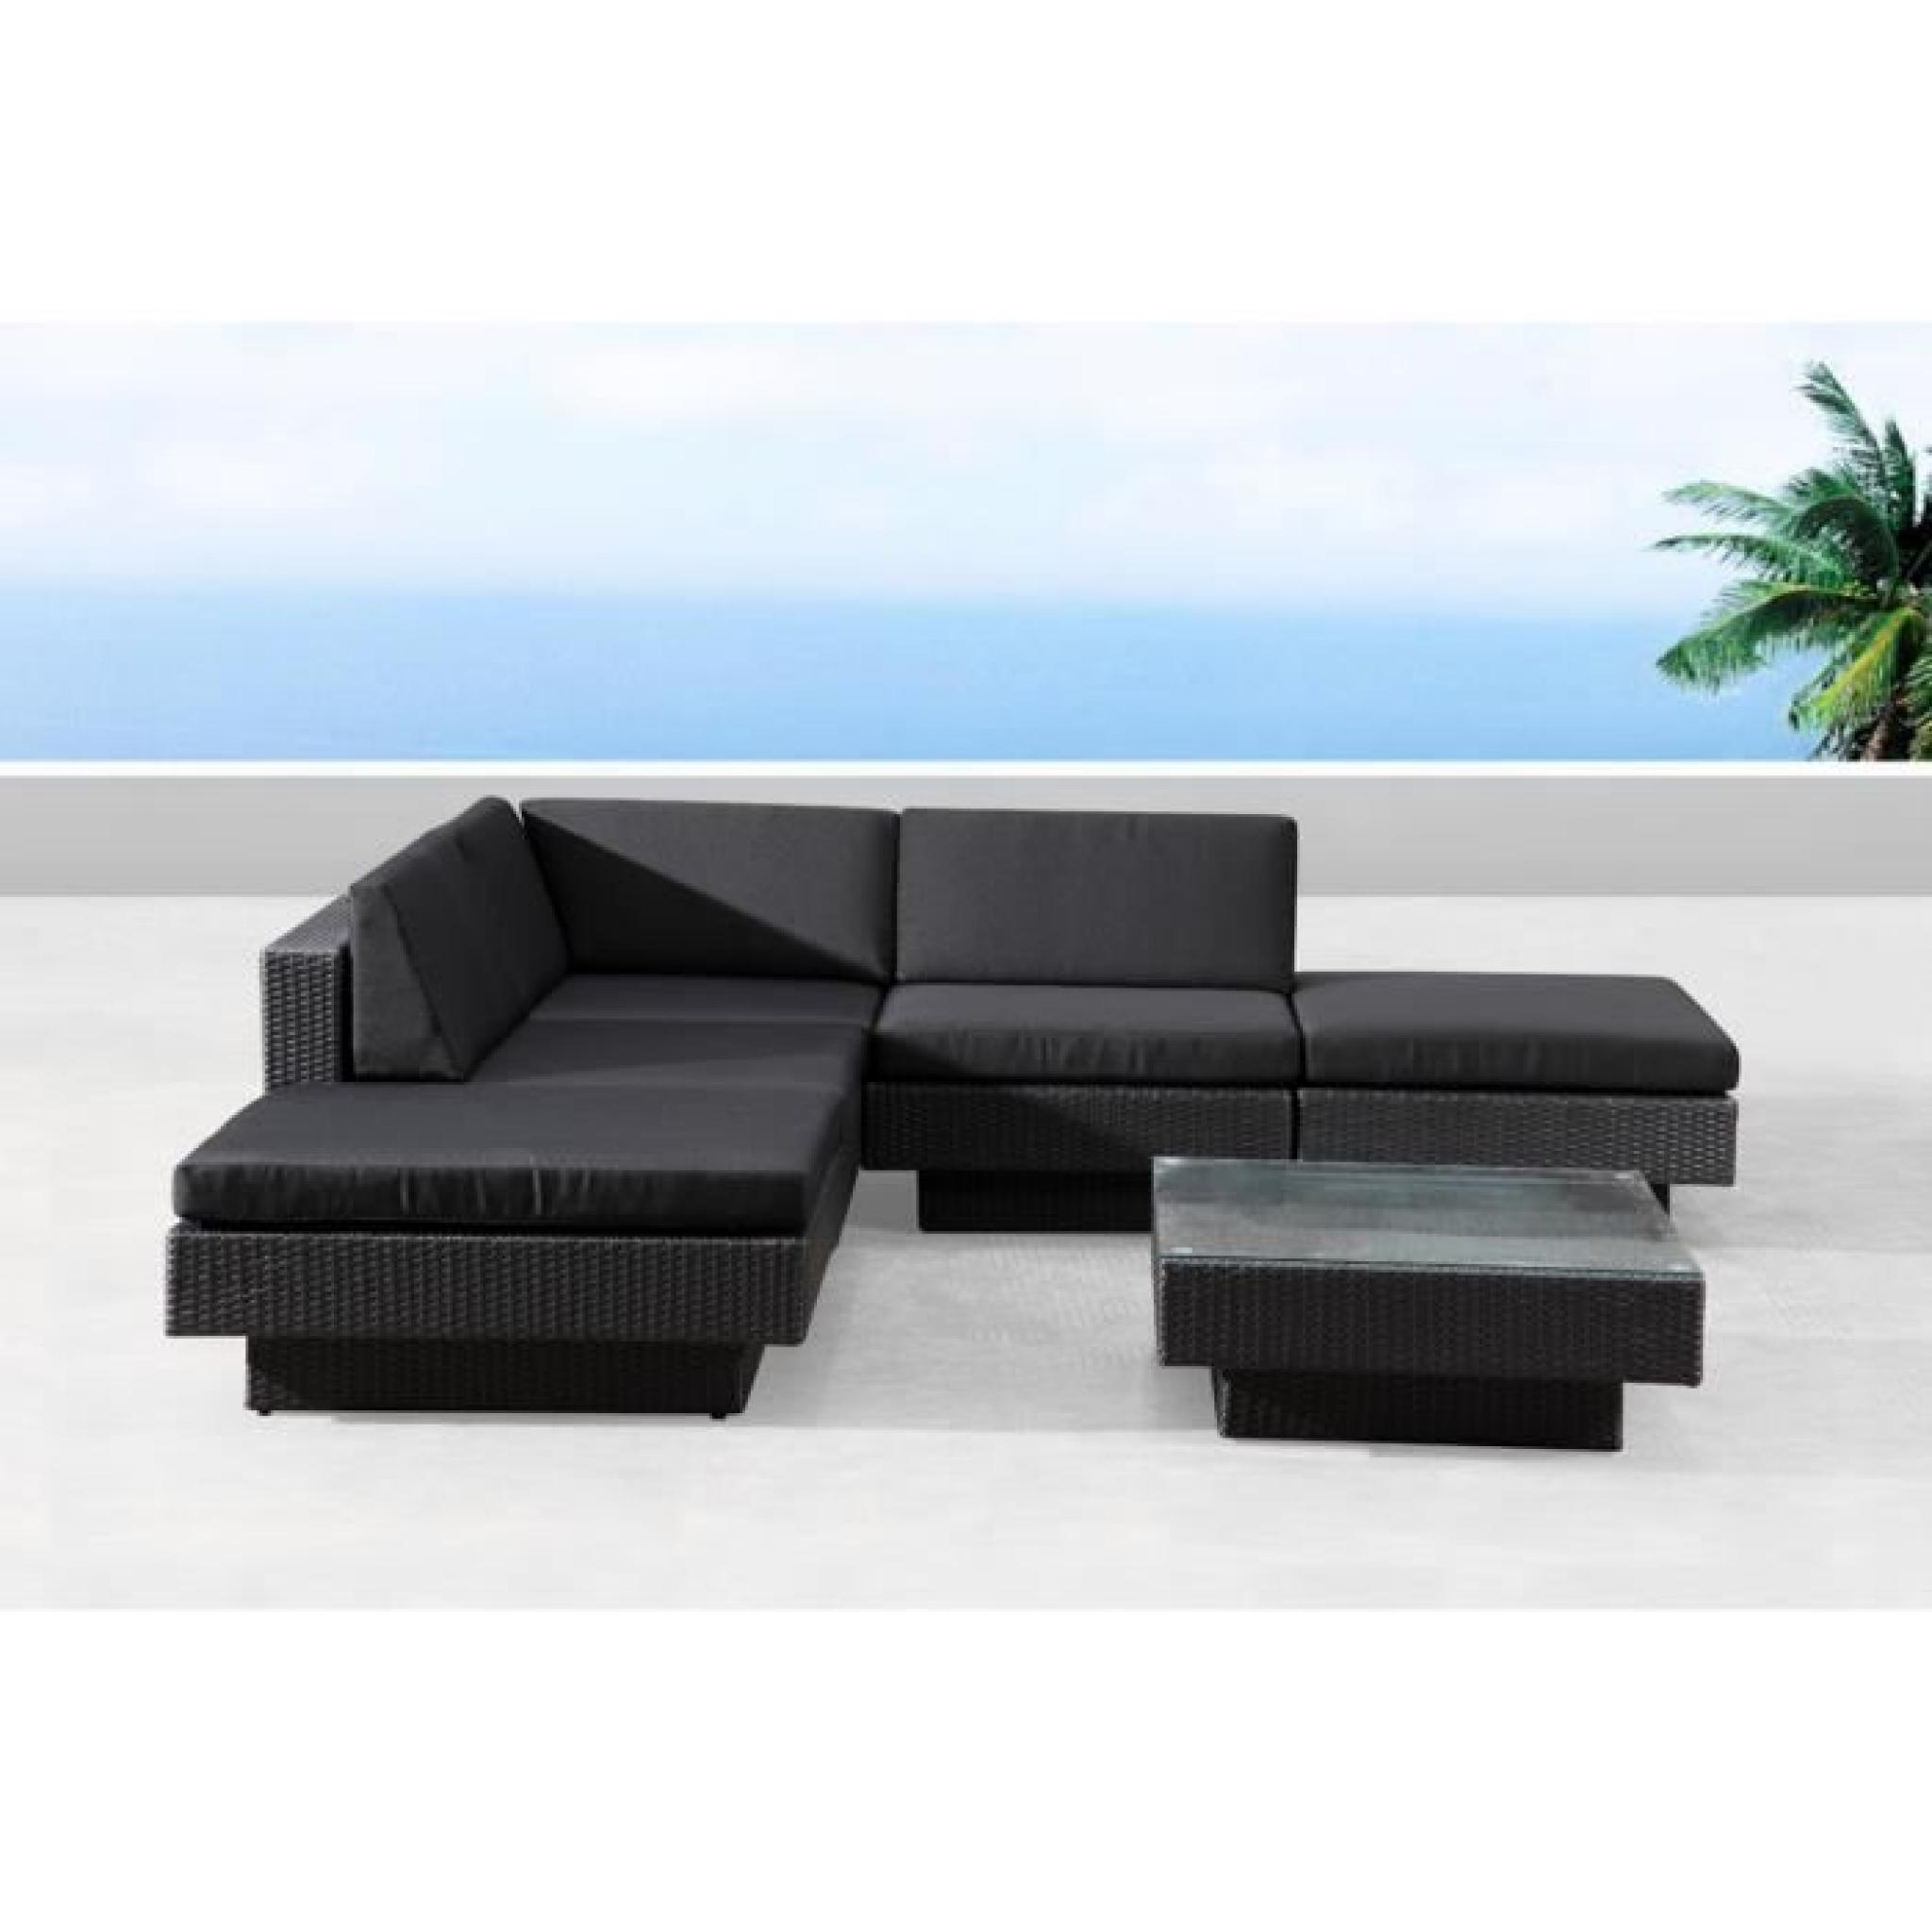 l gant salon de jardin d angle id es de salon de jardin. Black Bedroom Furniture Sets. Home Design Ideas